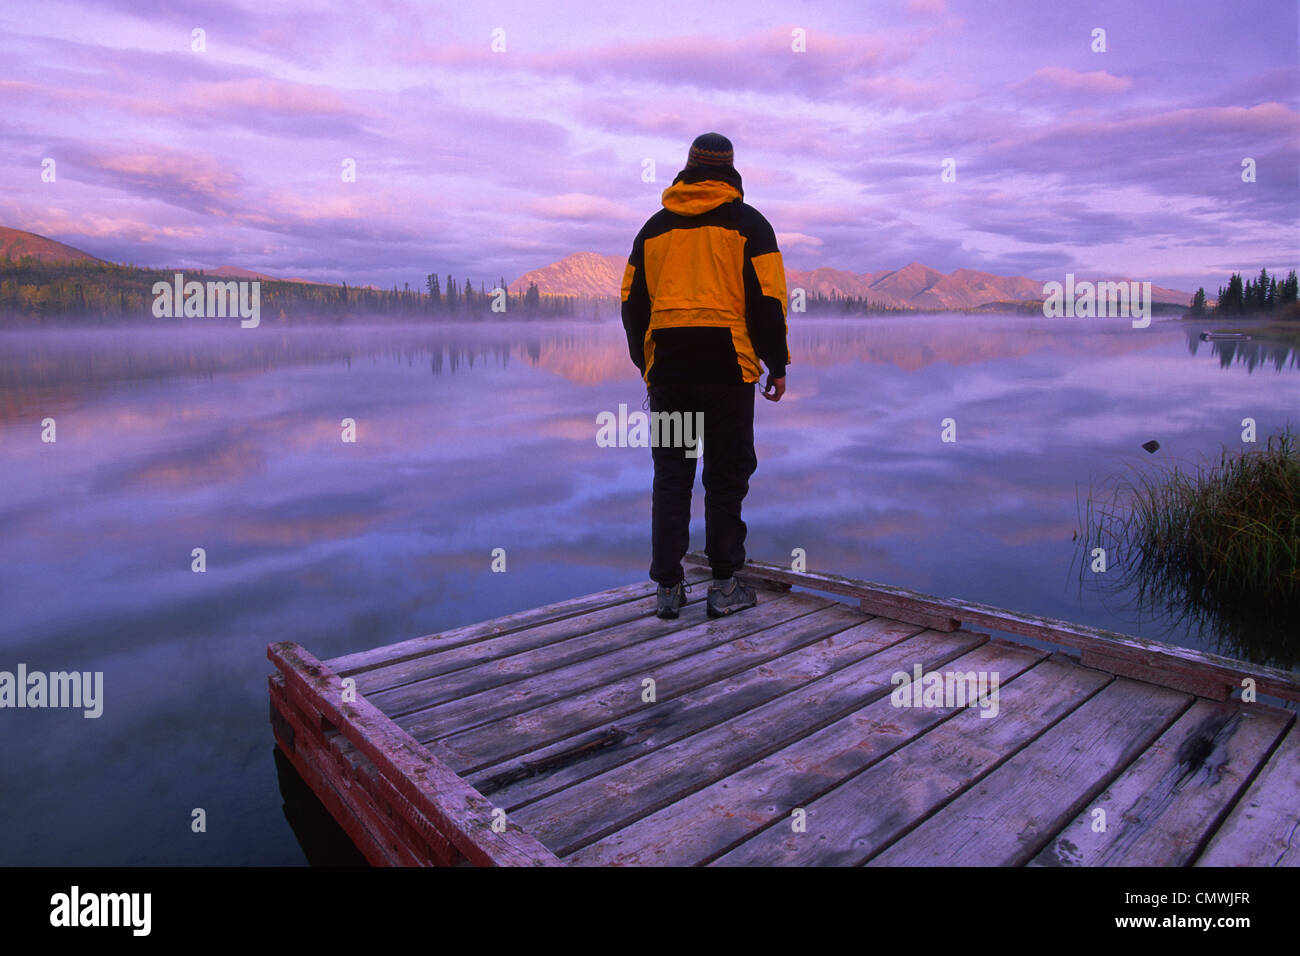 Hiker on Dock at Sunrise, Jackfish Lake, near confluence of North Canol and Robert Campbell Highways, south of Ross - Stock Image